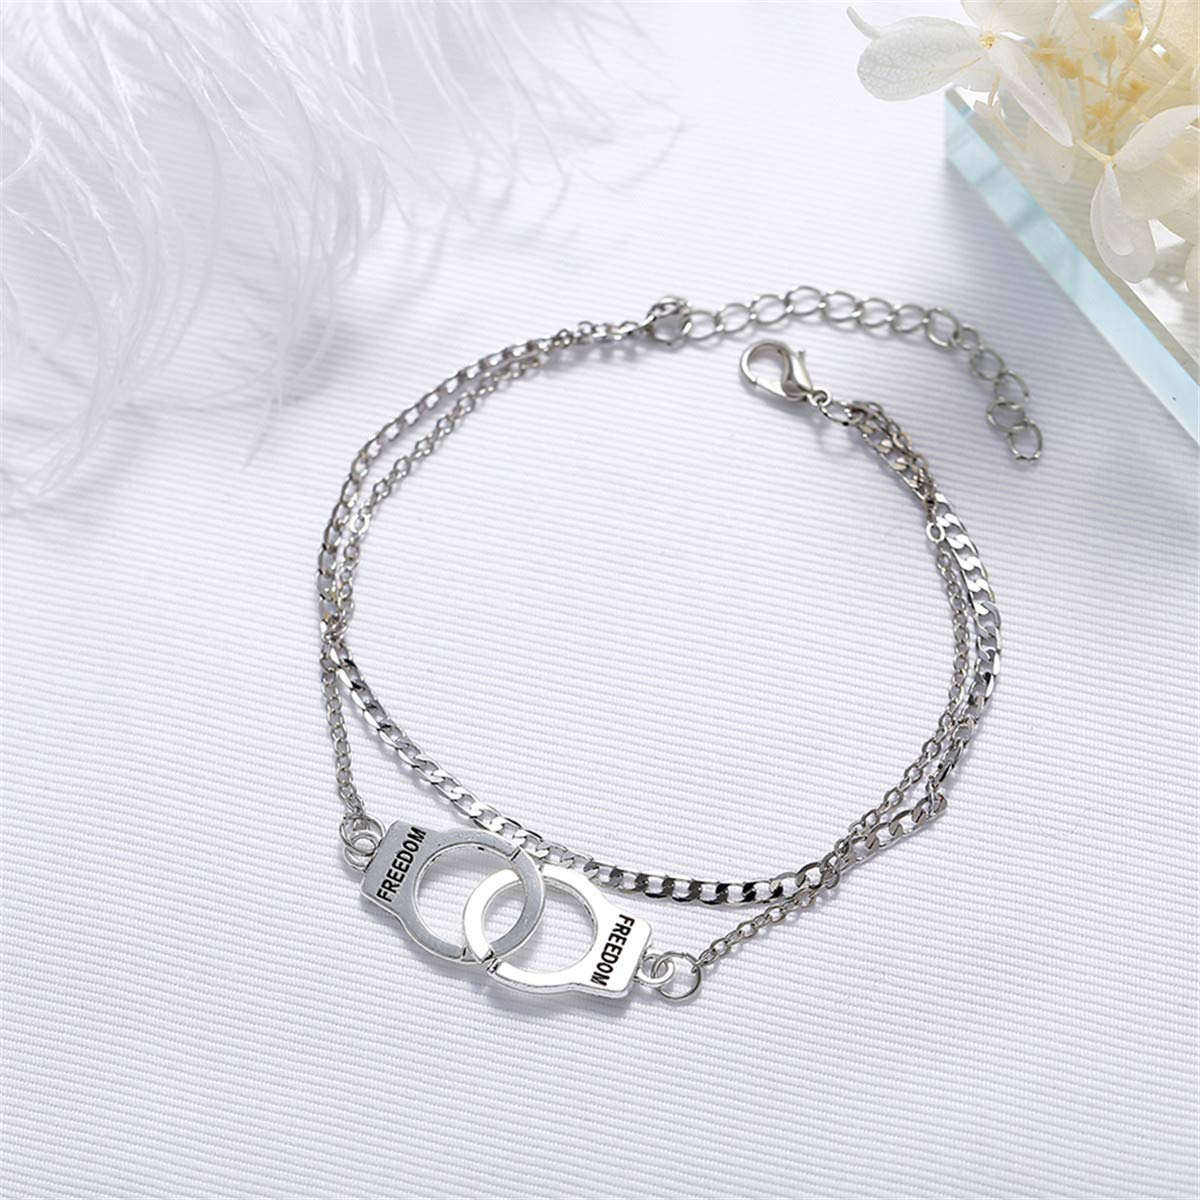 Body Beach Anklet Charm ONLY $...